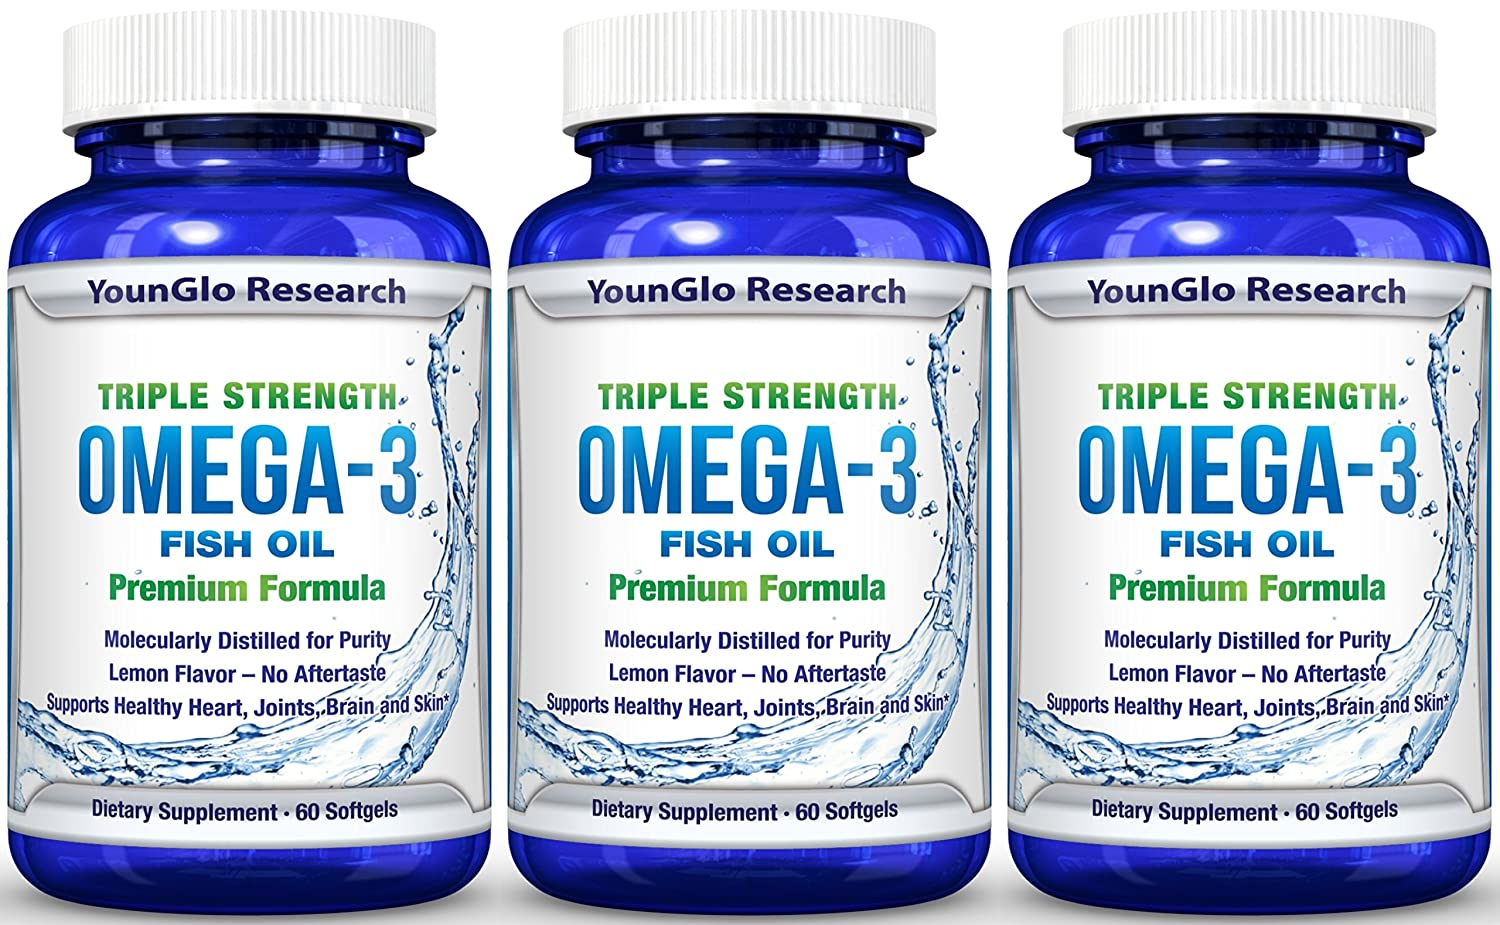 Fish Oil Pills Pharmaceutical Quality Triple Ever E Isi 30 Softgels Strength Omega 3 Burpless Capsules Pack Health Personal Care